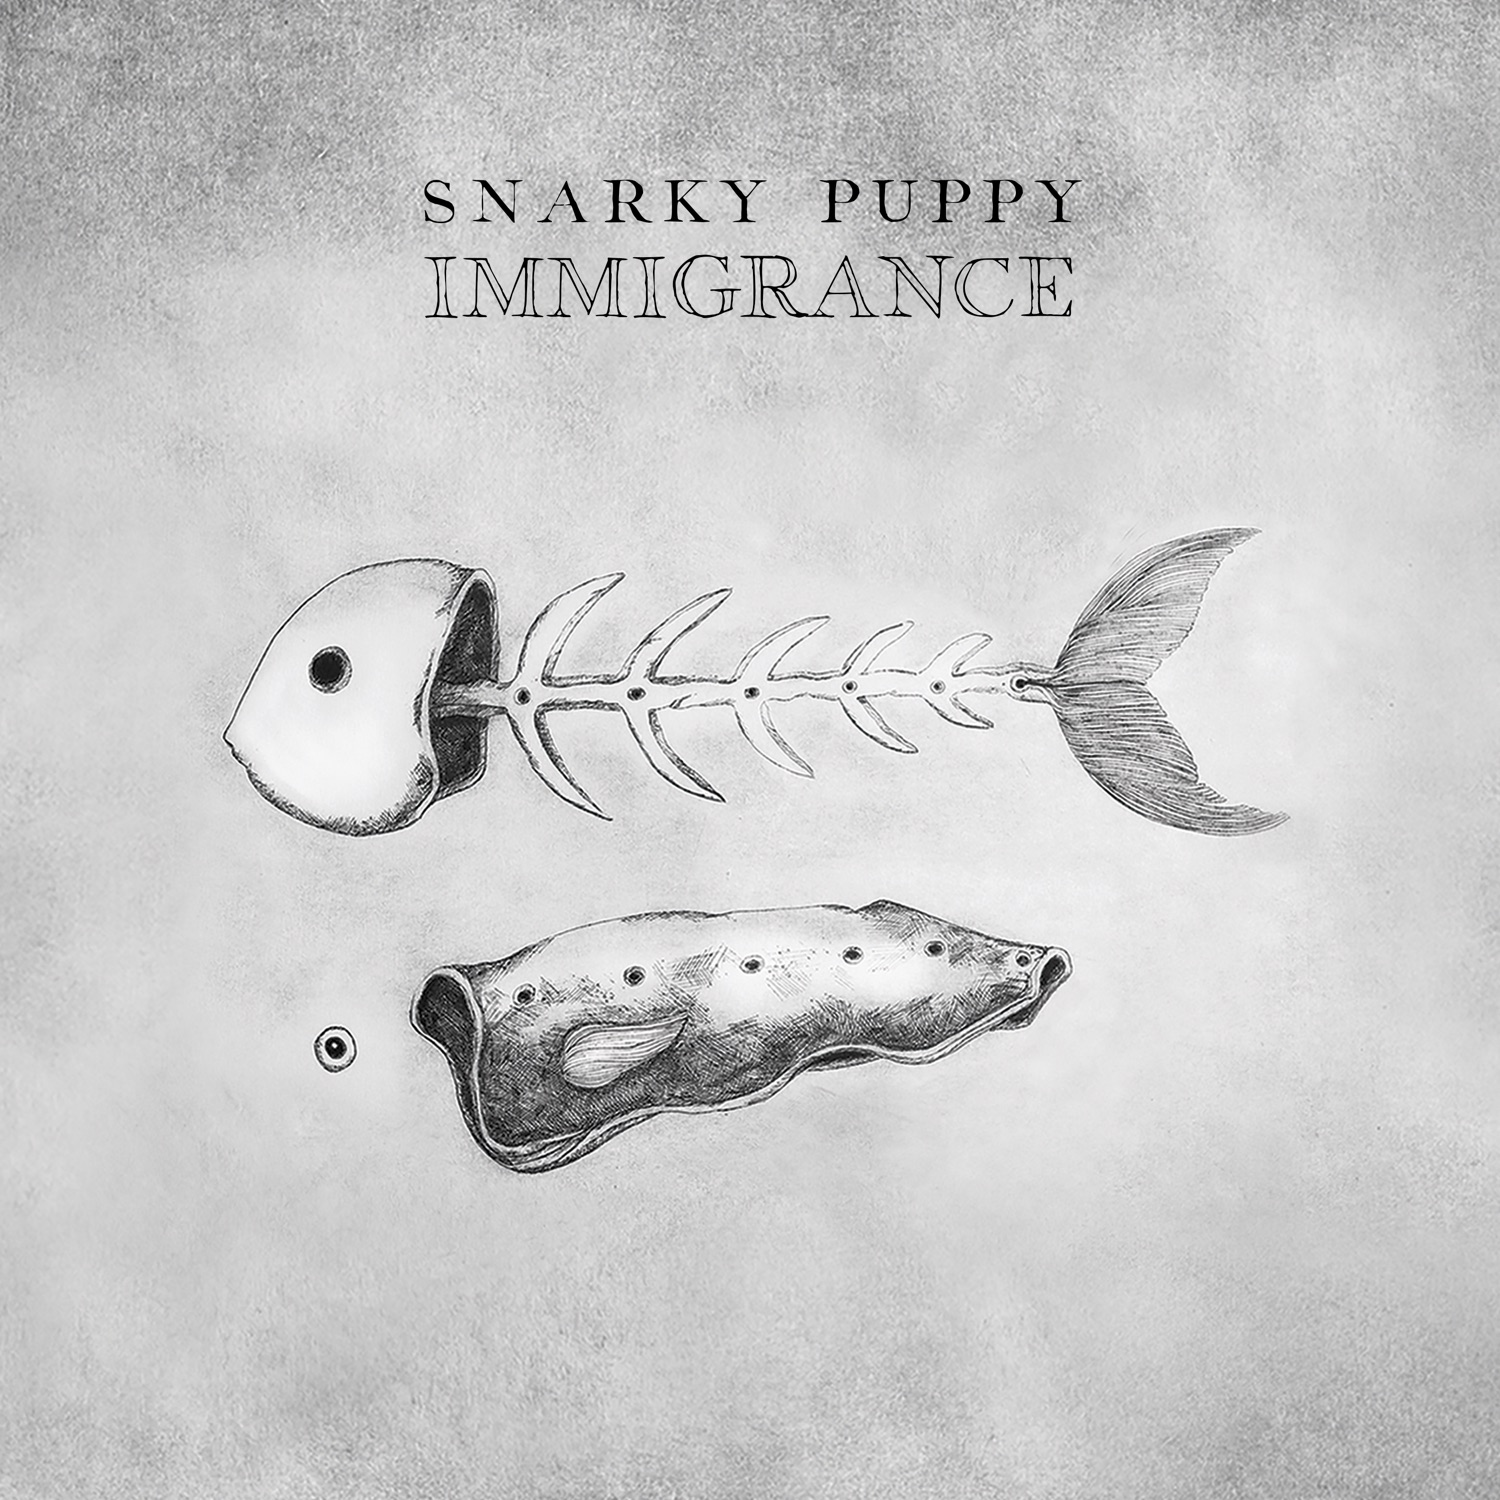 Snarky Puppy | Snarky Puppy | IMMIGRANCE: the all new album is